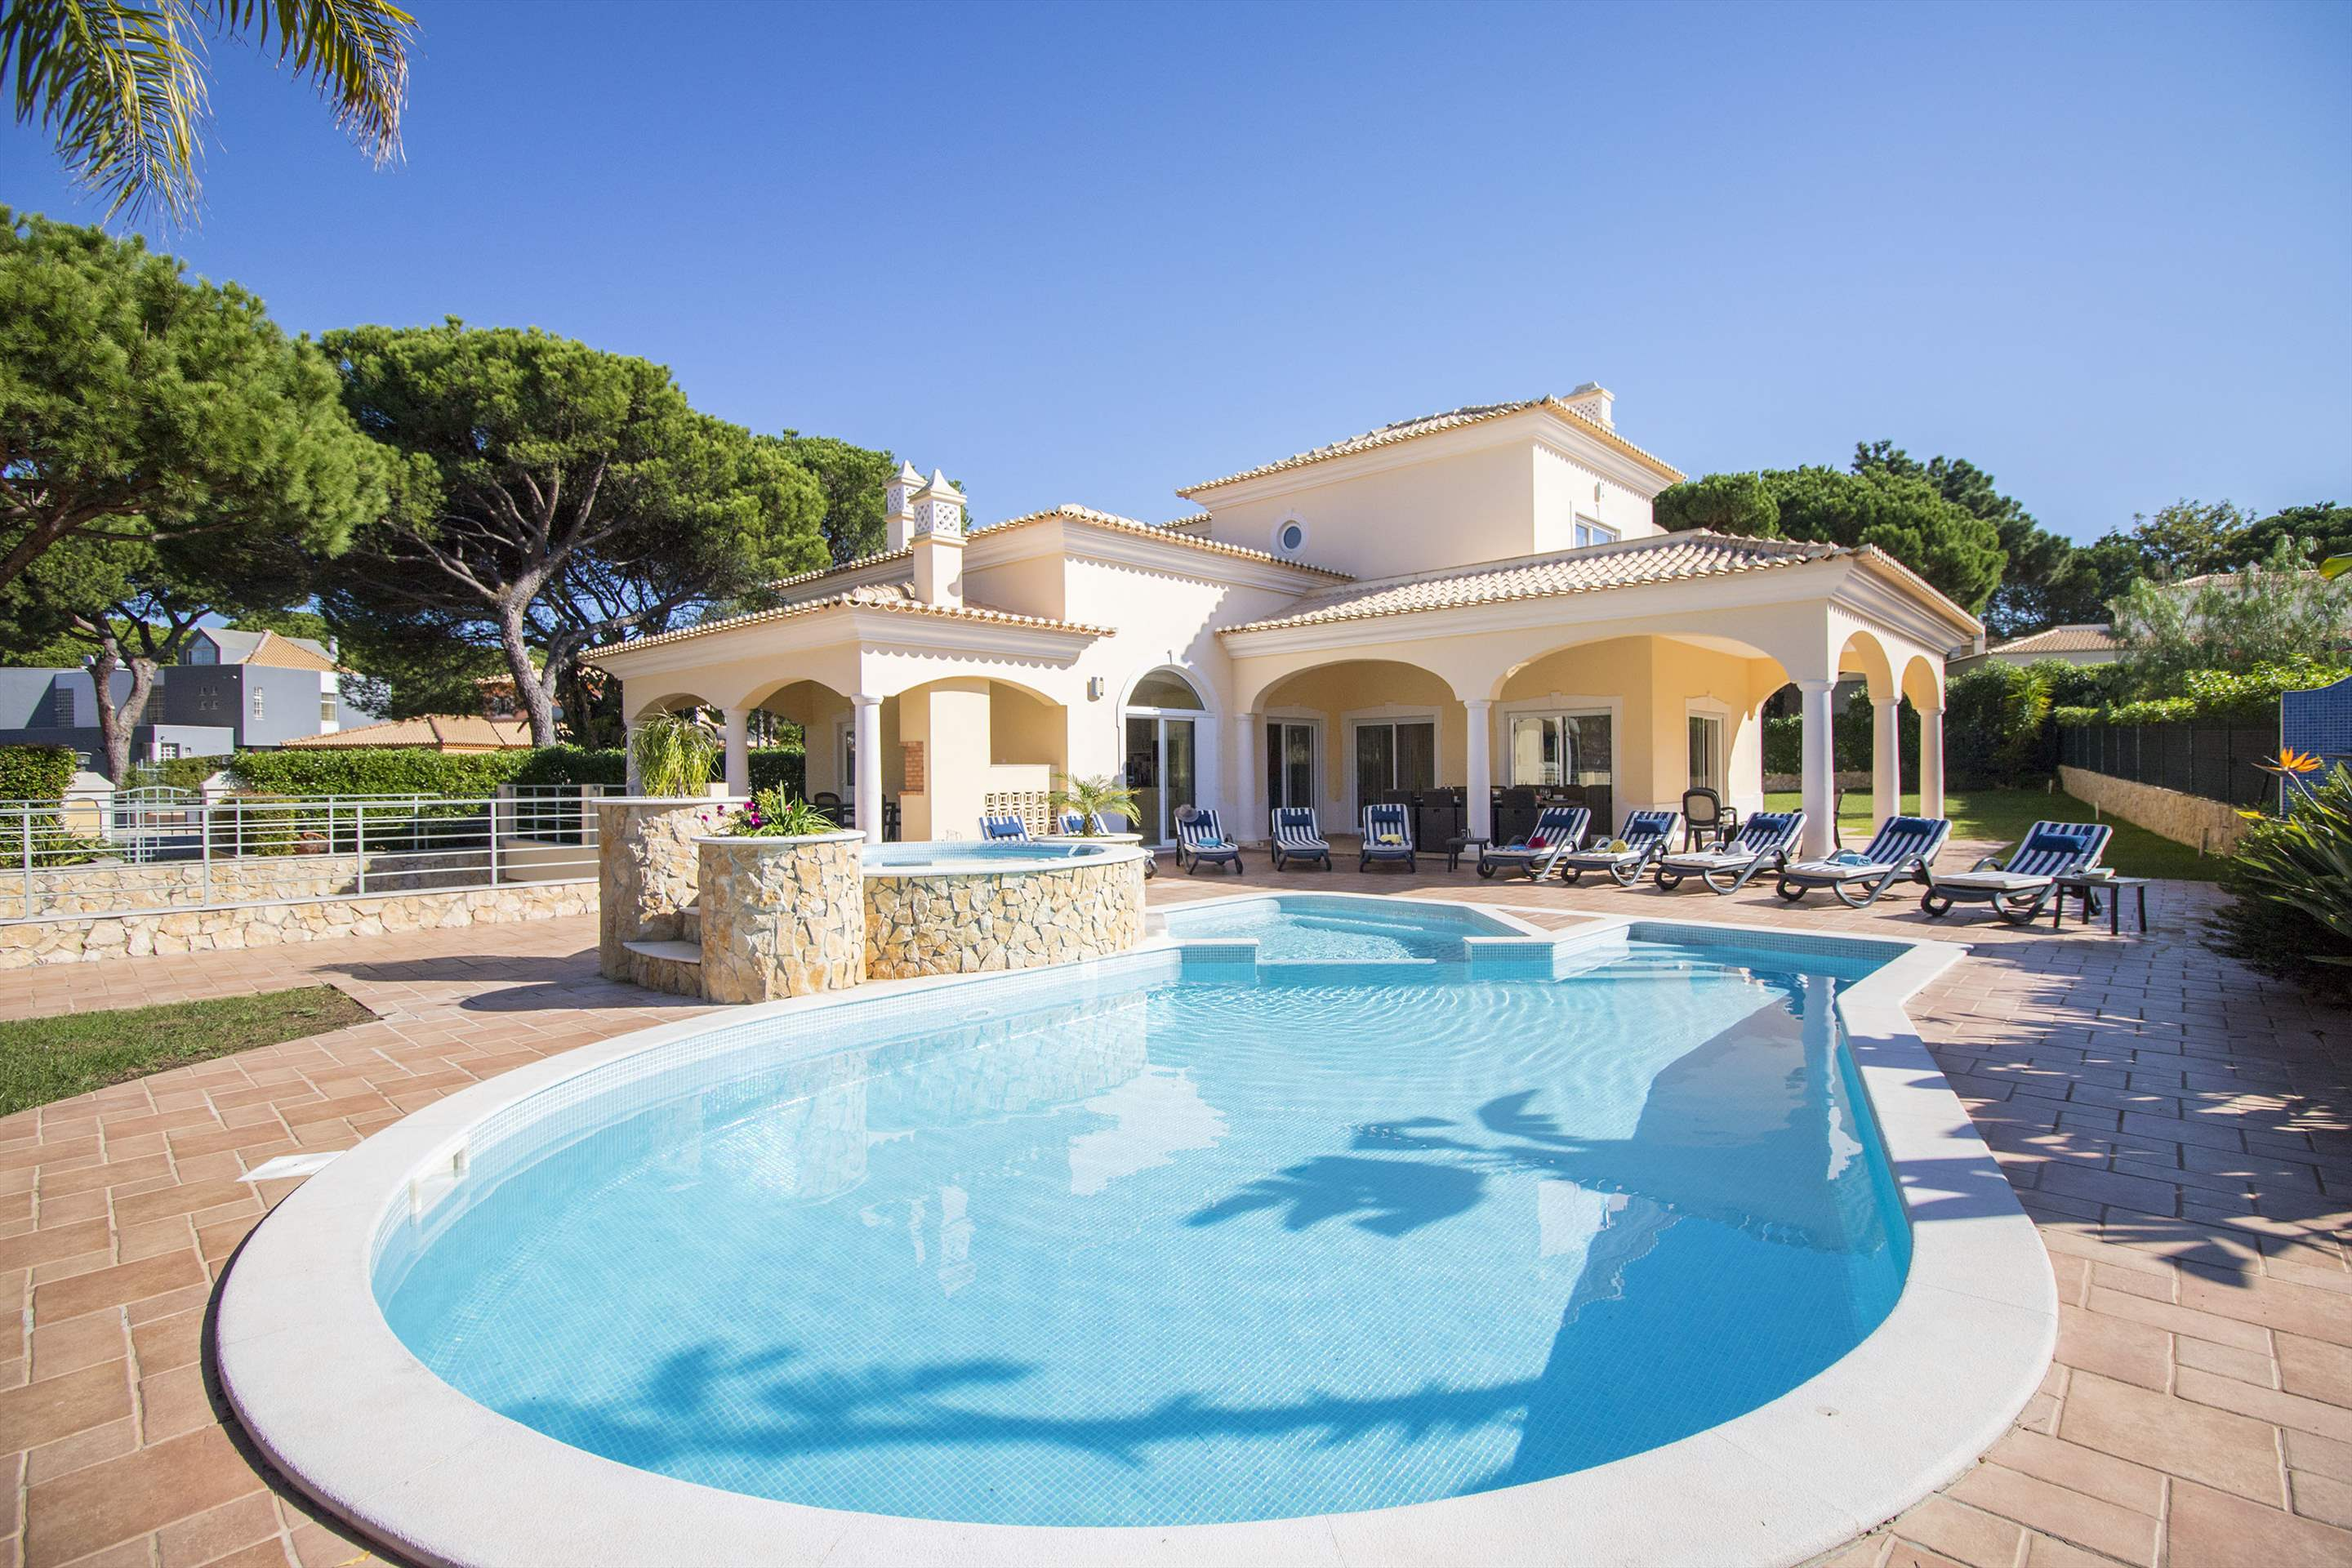 Villa Hera, 6 bedroom villa in Vilamoura Area, Algarve